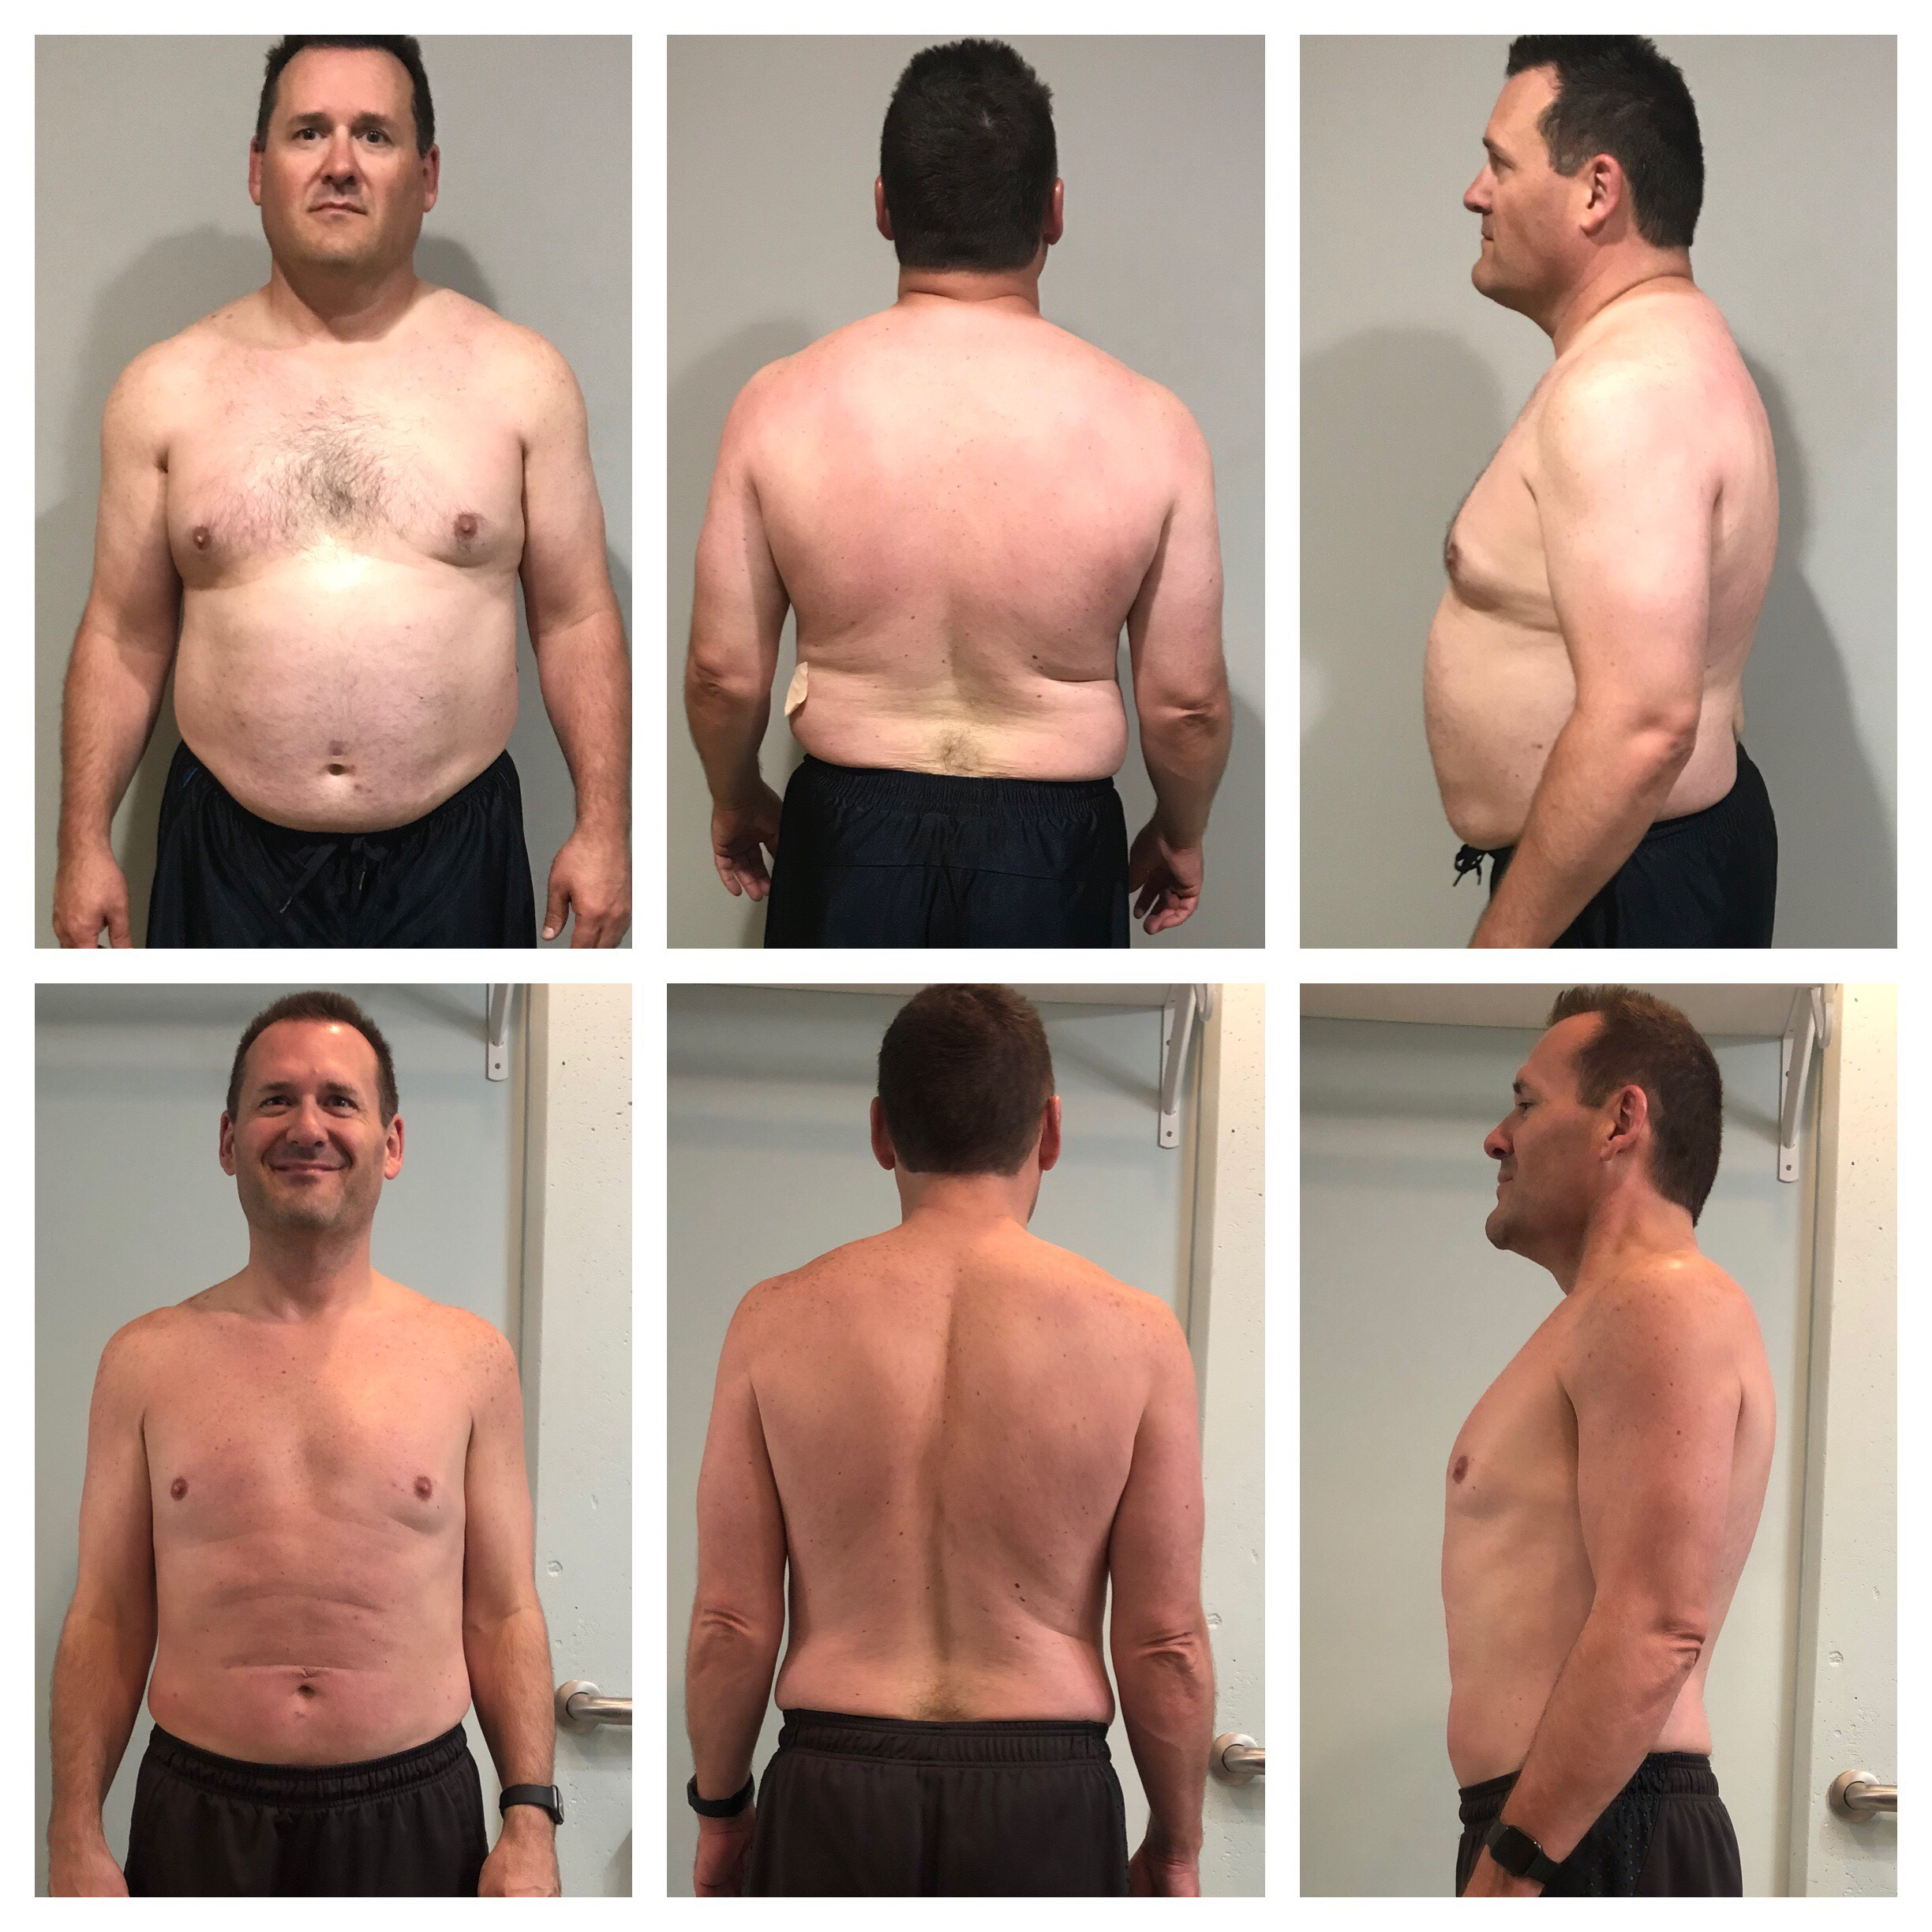 Mike has lost 58 lbs in 6 months.